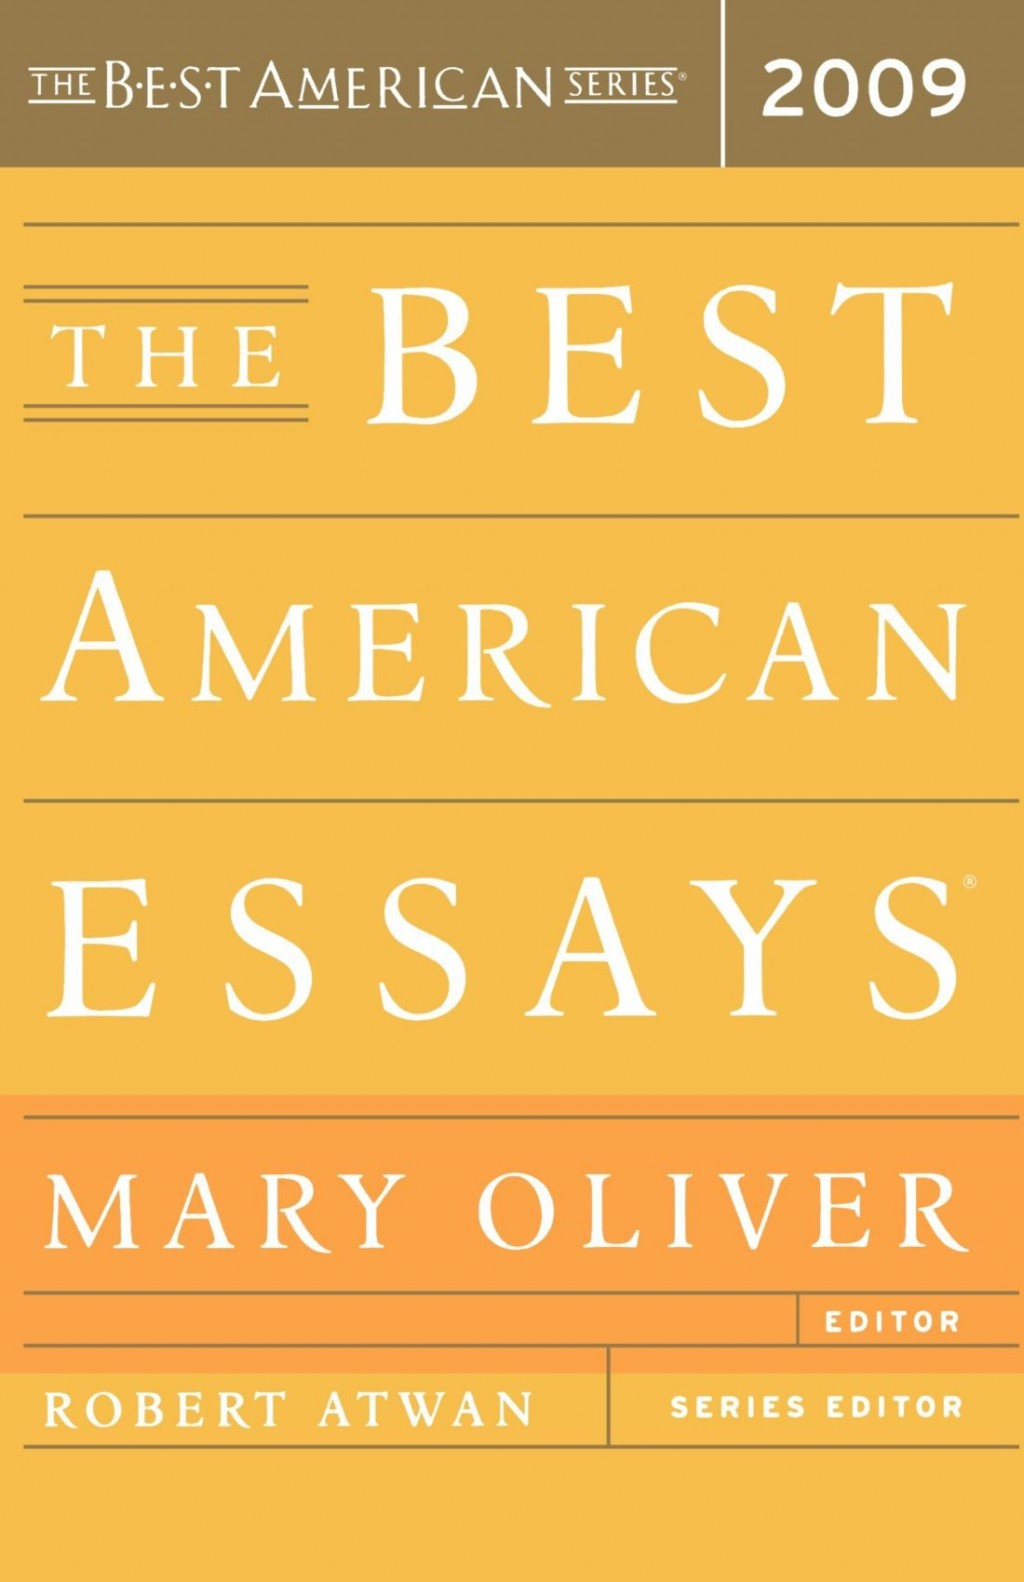 008 617qb5slhfl Essay Example The Best American Wonderful Essays 2018 List Pdf Download 2017 Free Large